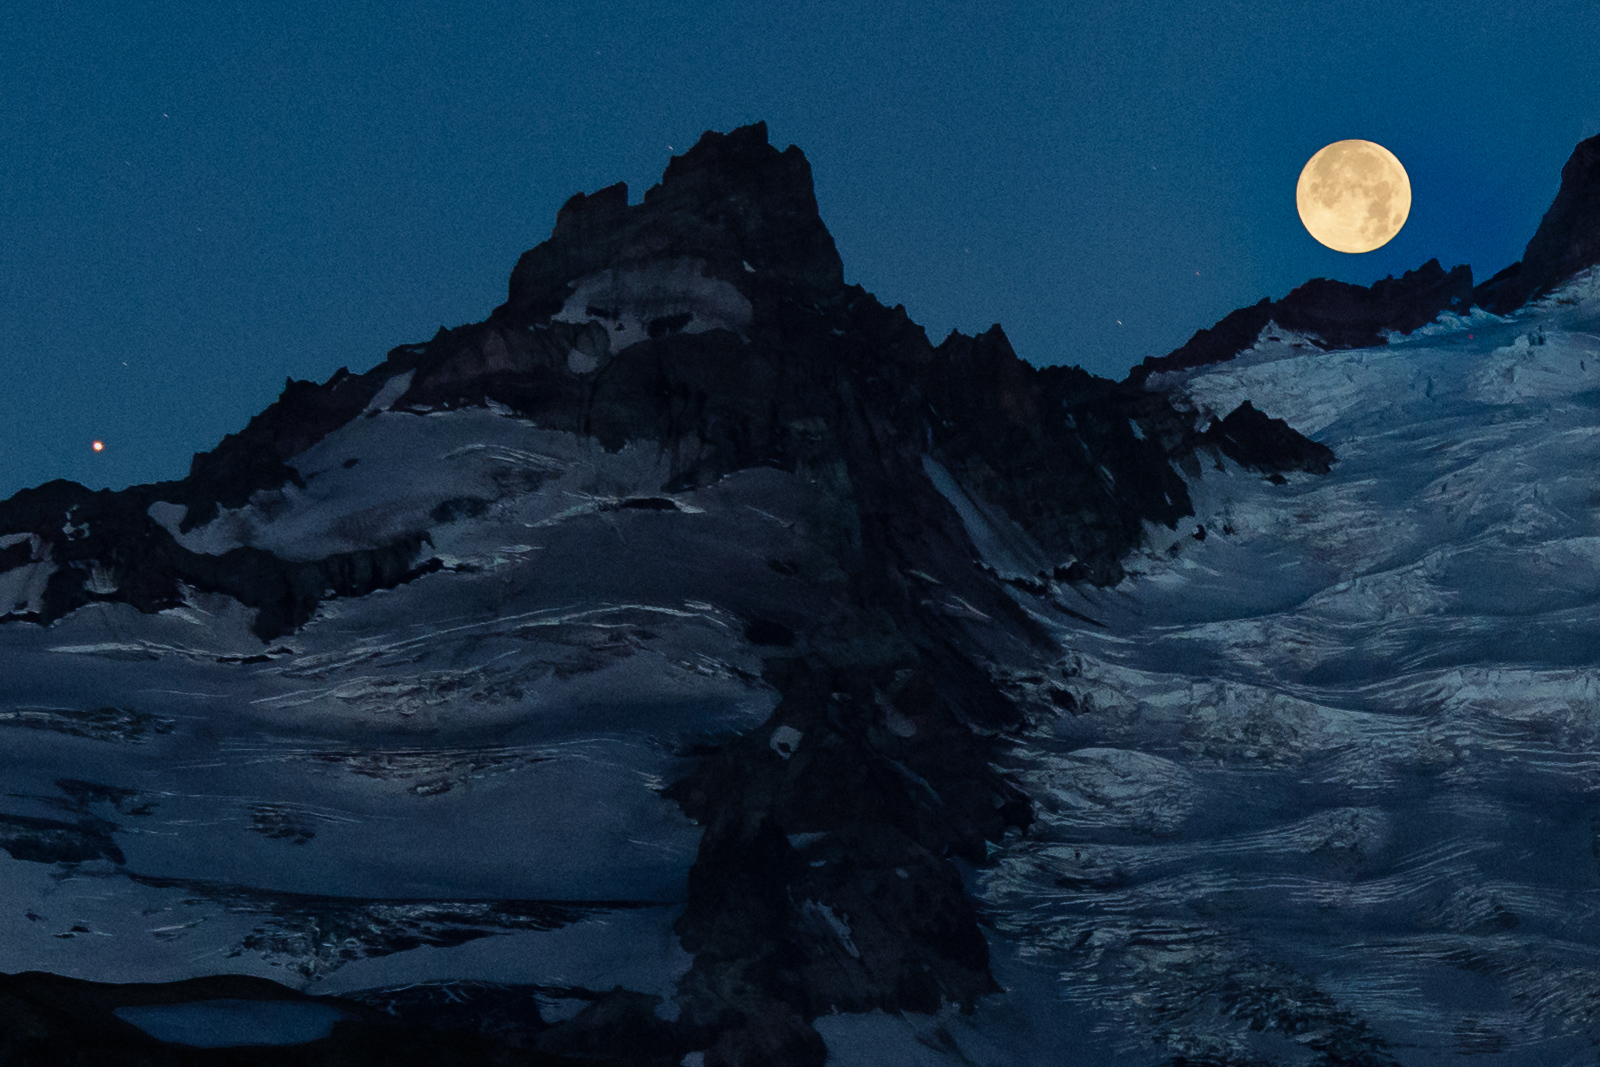 f629b5480 Moonrise, moonset and Mars: Photos hit the high points at Mount ...